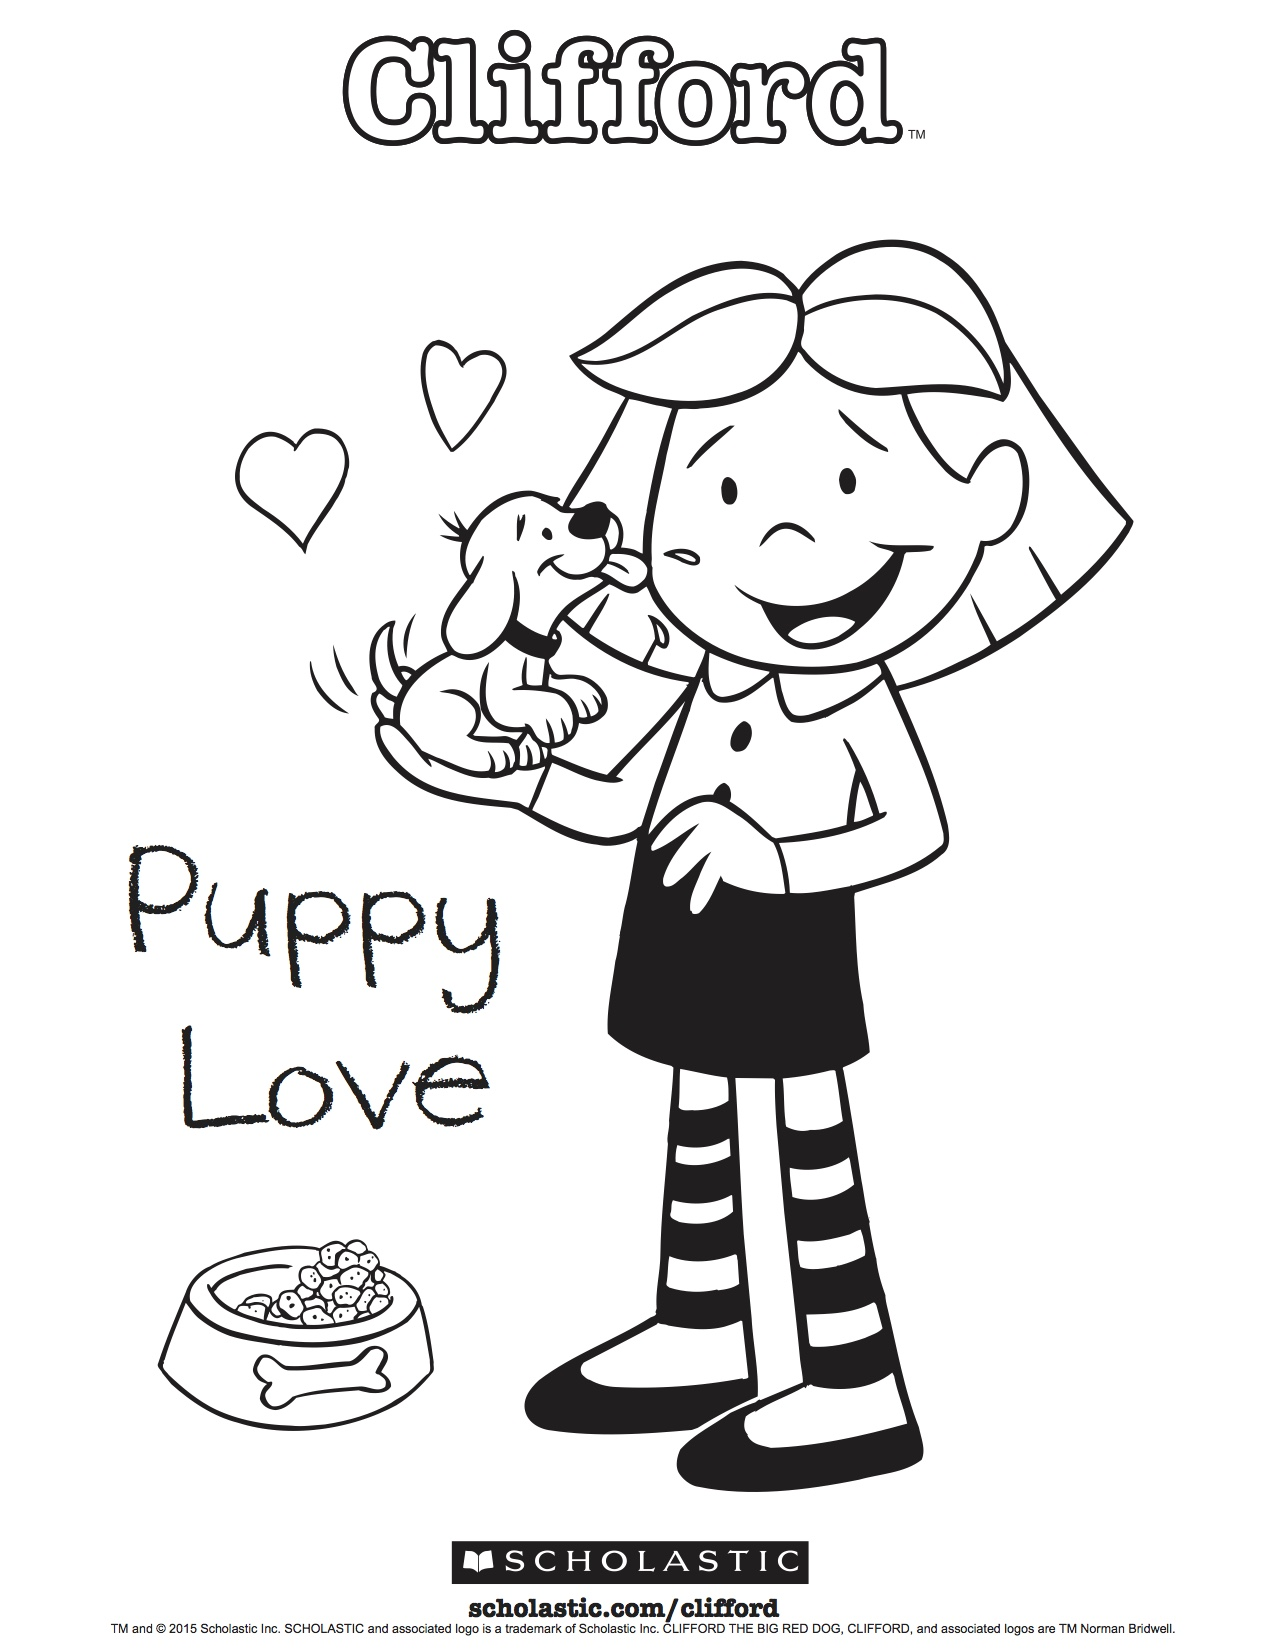 Clifford S Puppy Love Coloring Sheet